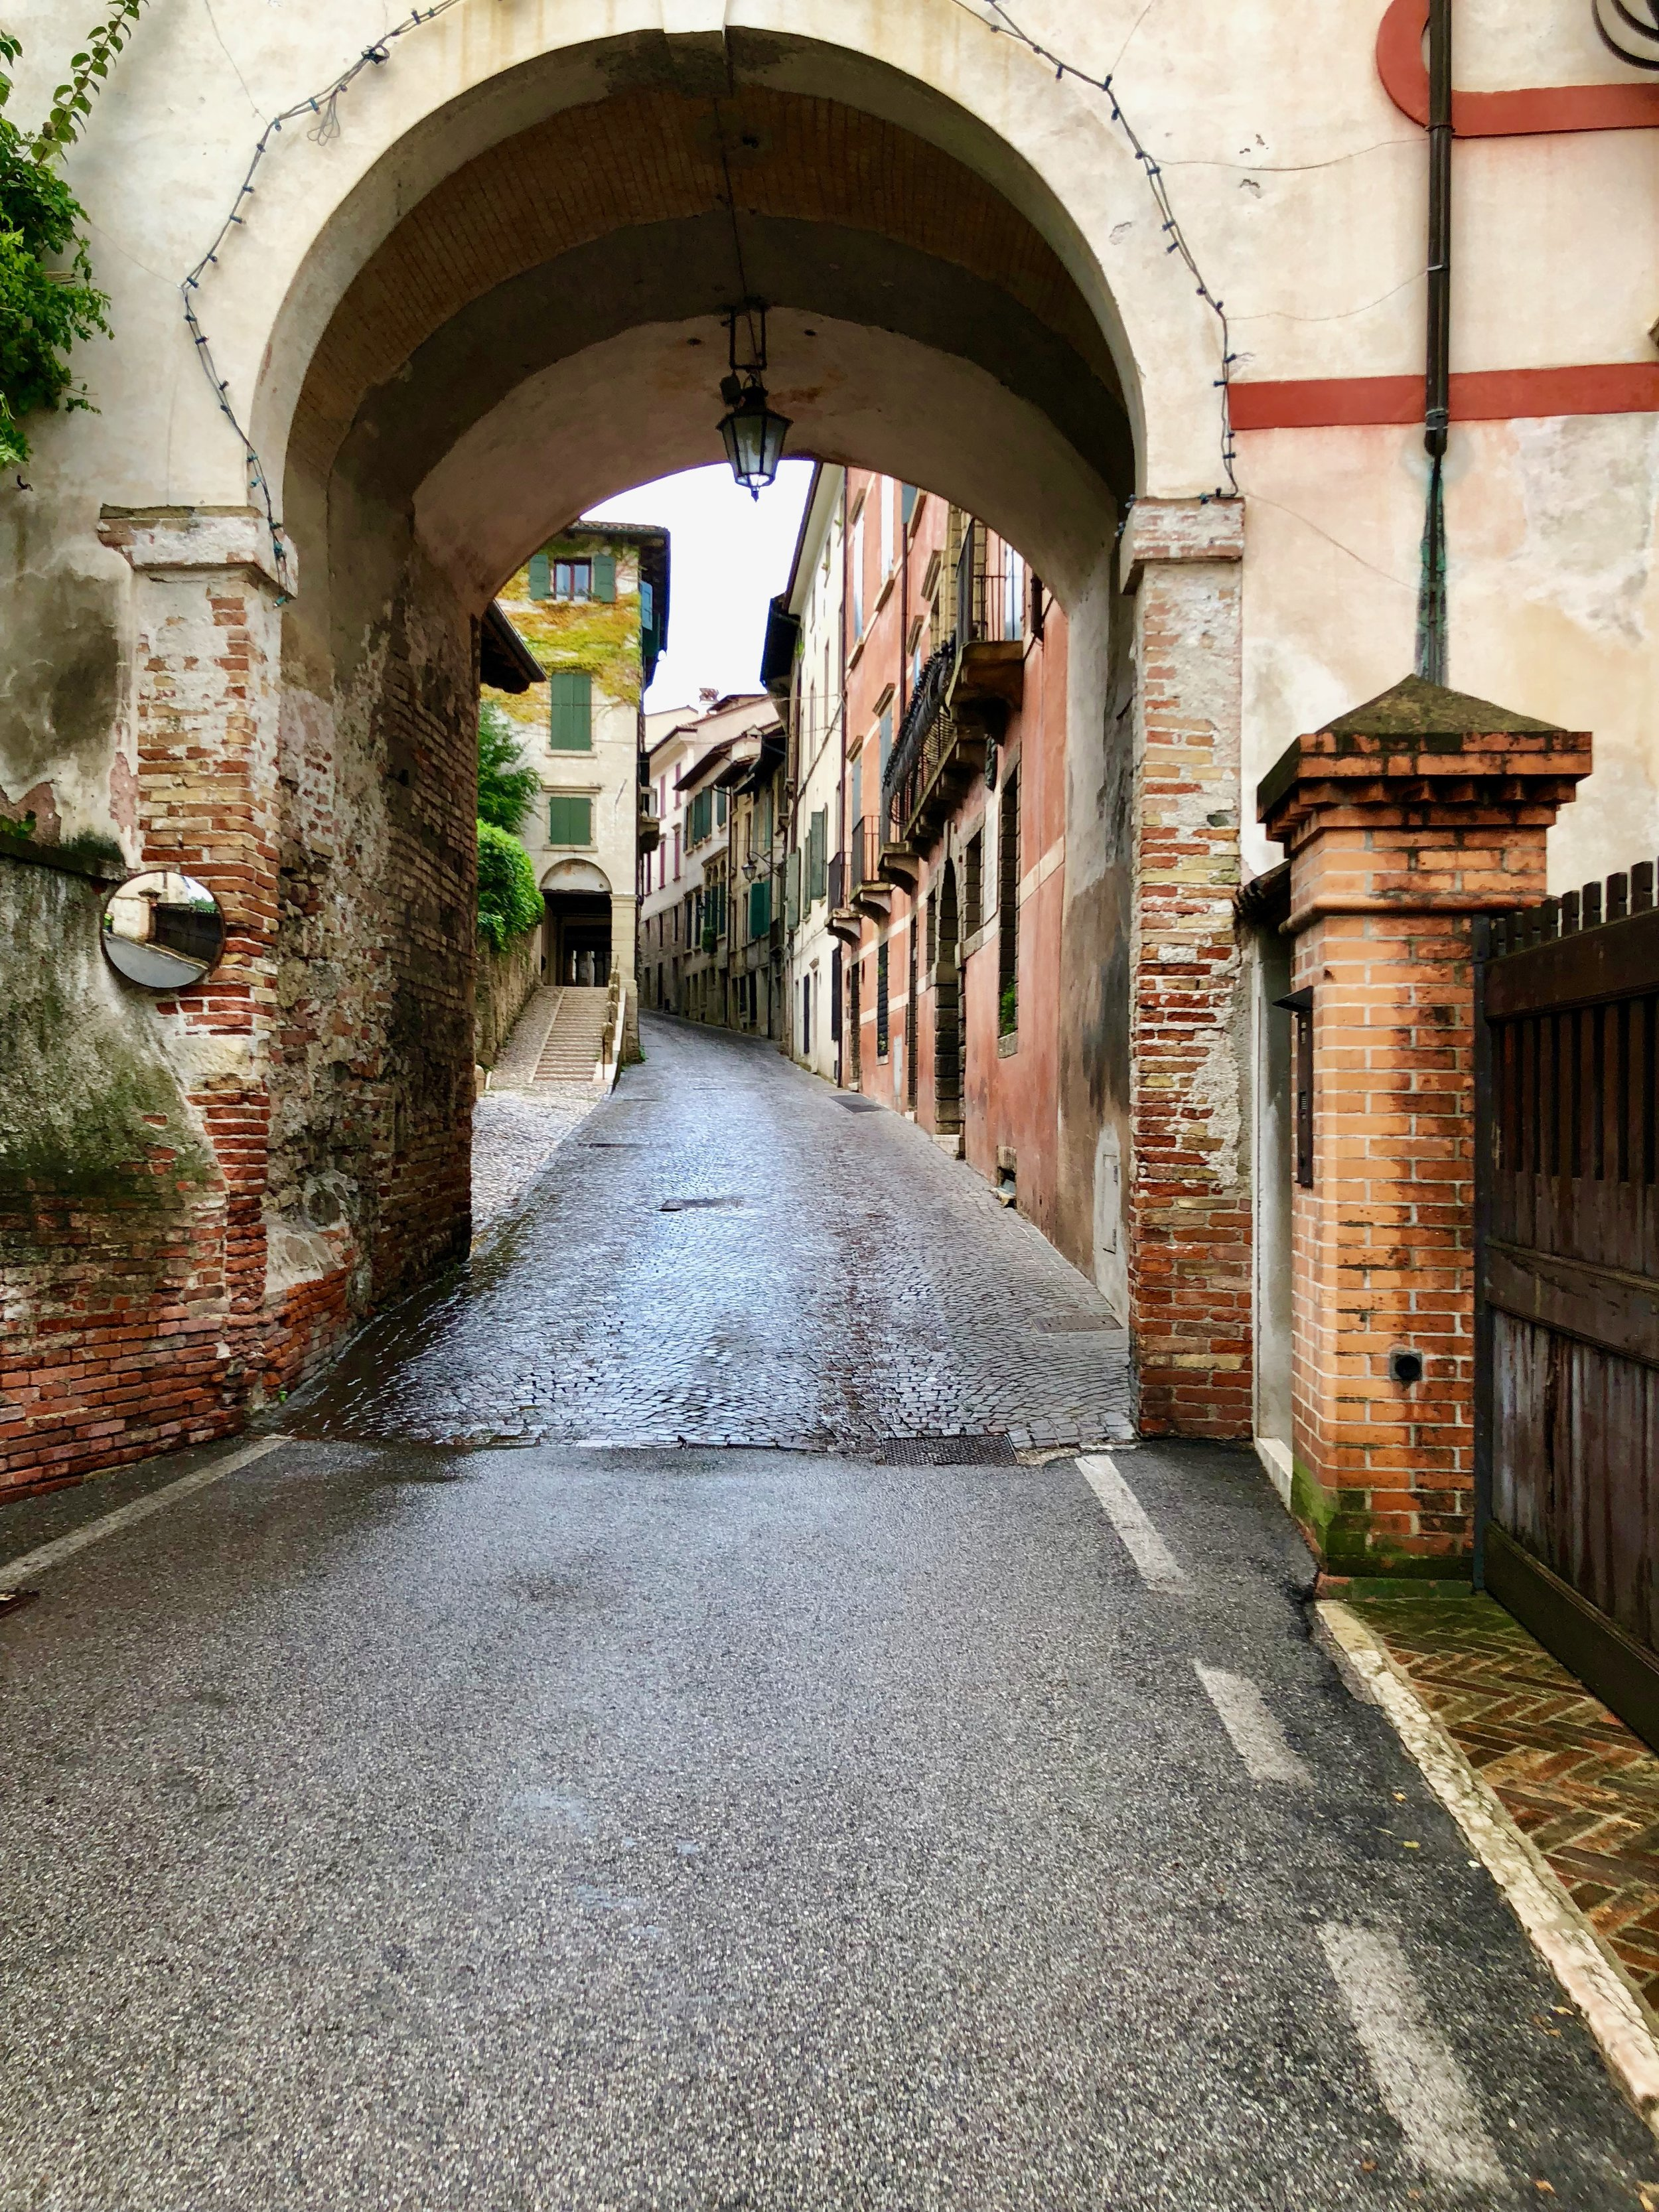 Asolo and it's many small brick streets